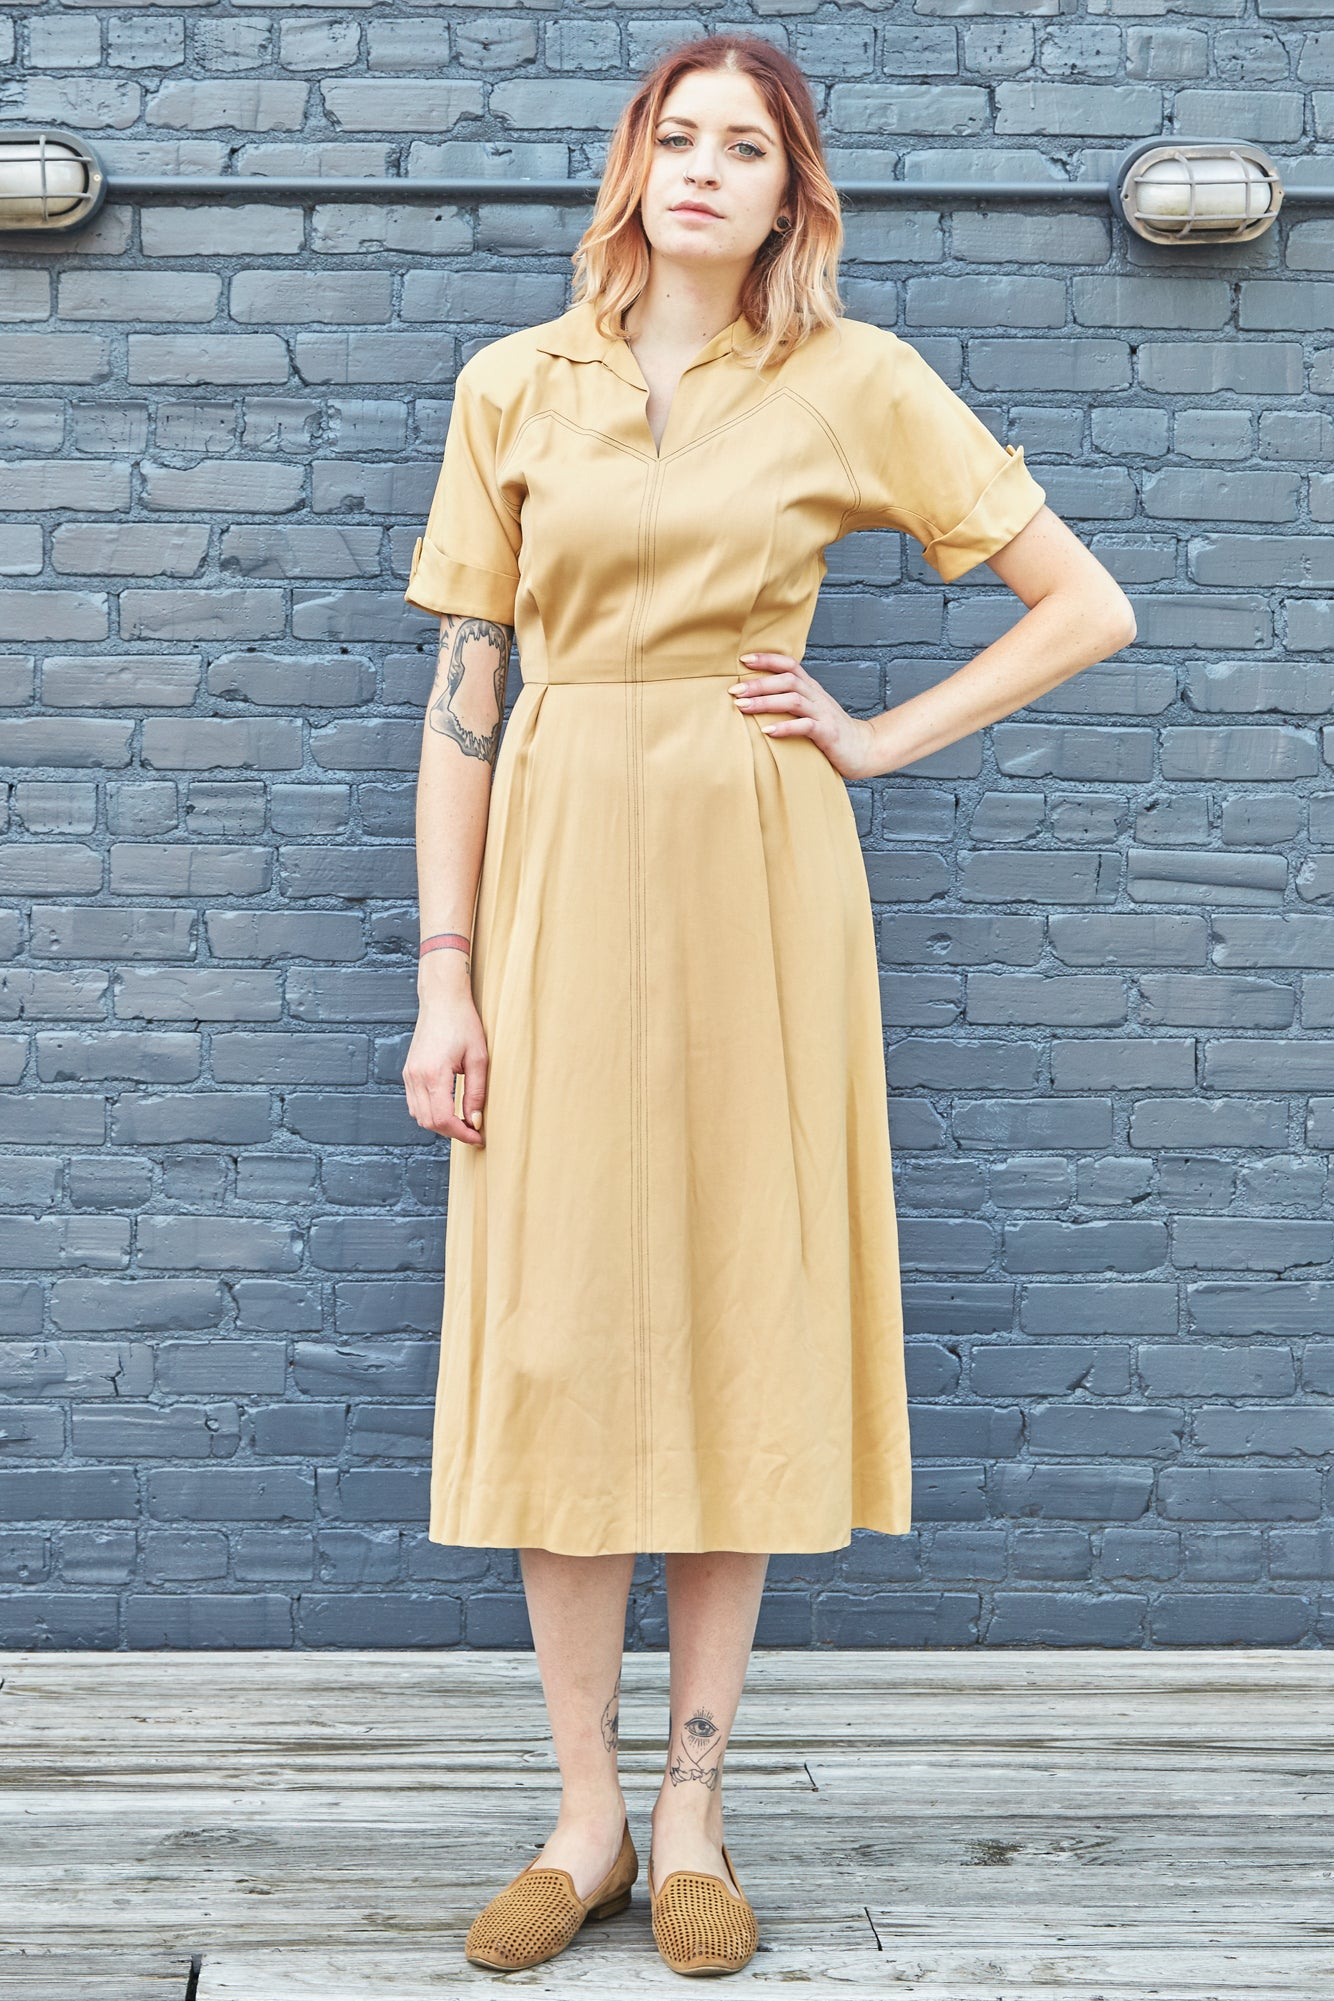 40s Contrast-Stitched Shirtwaist Dress